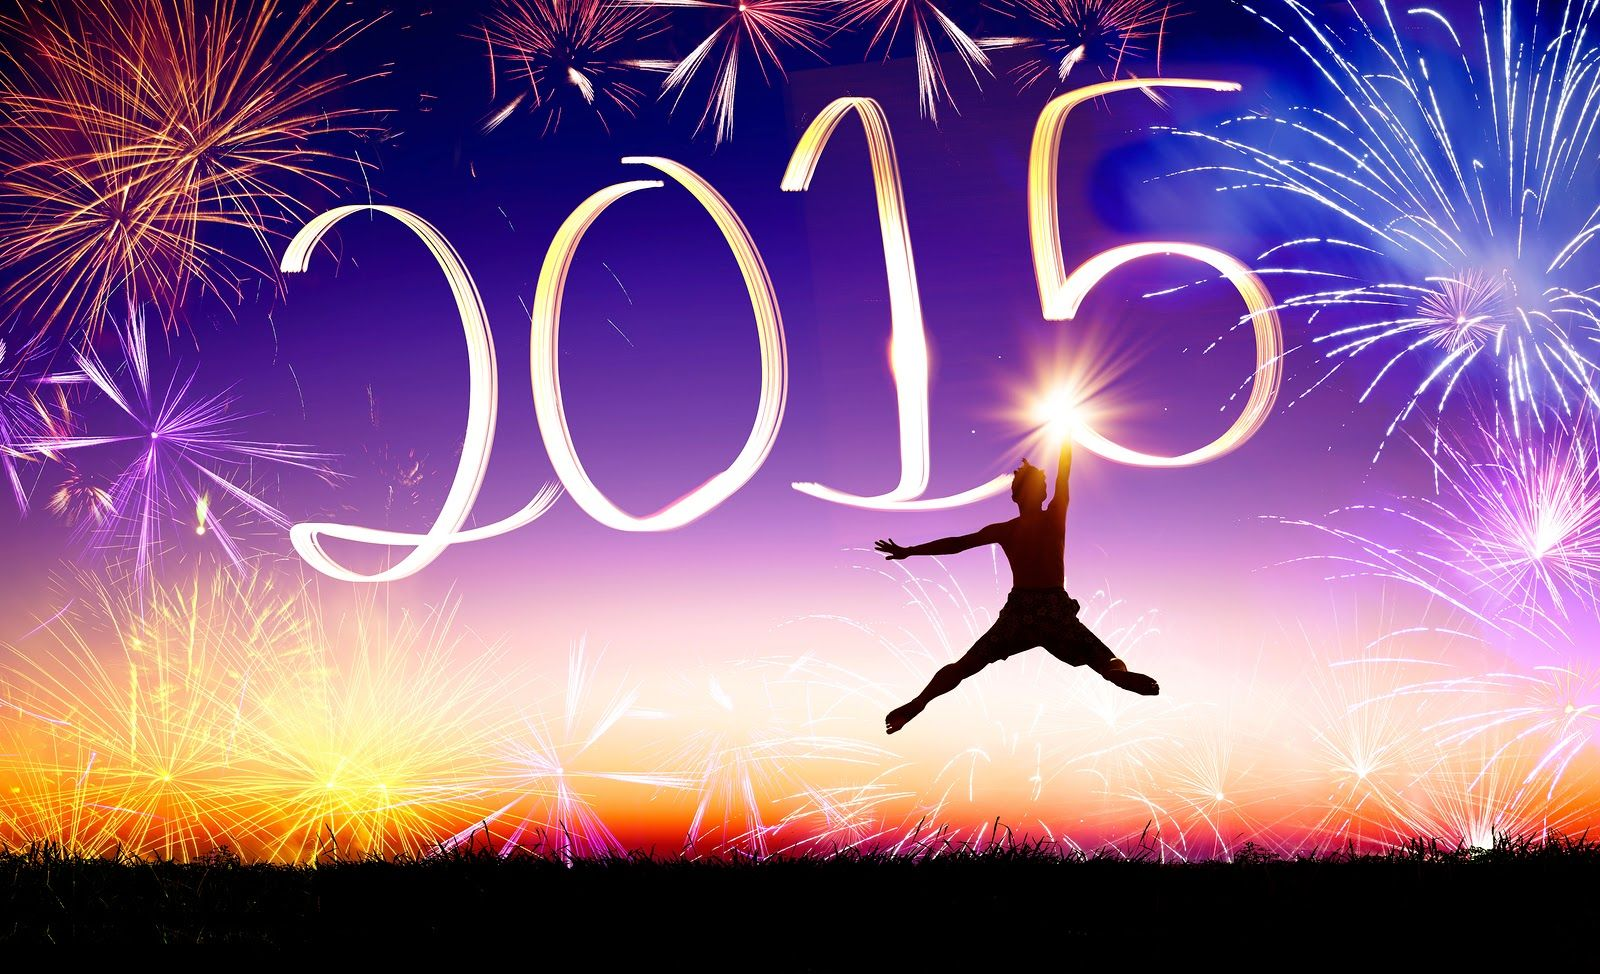 Happy New Year 2015 Messages Wishes Images Quotes Greetings And